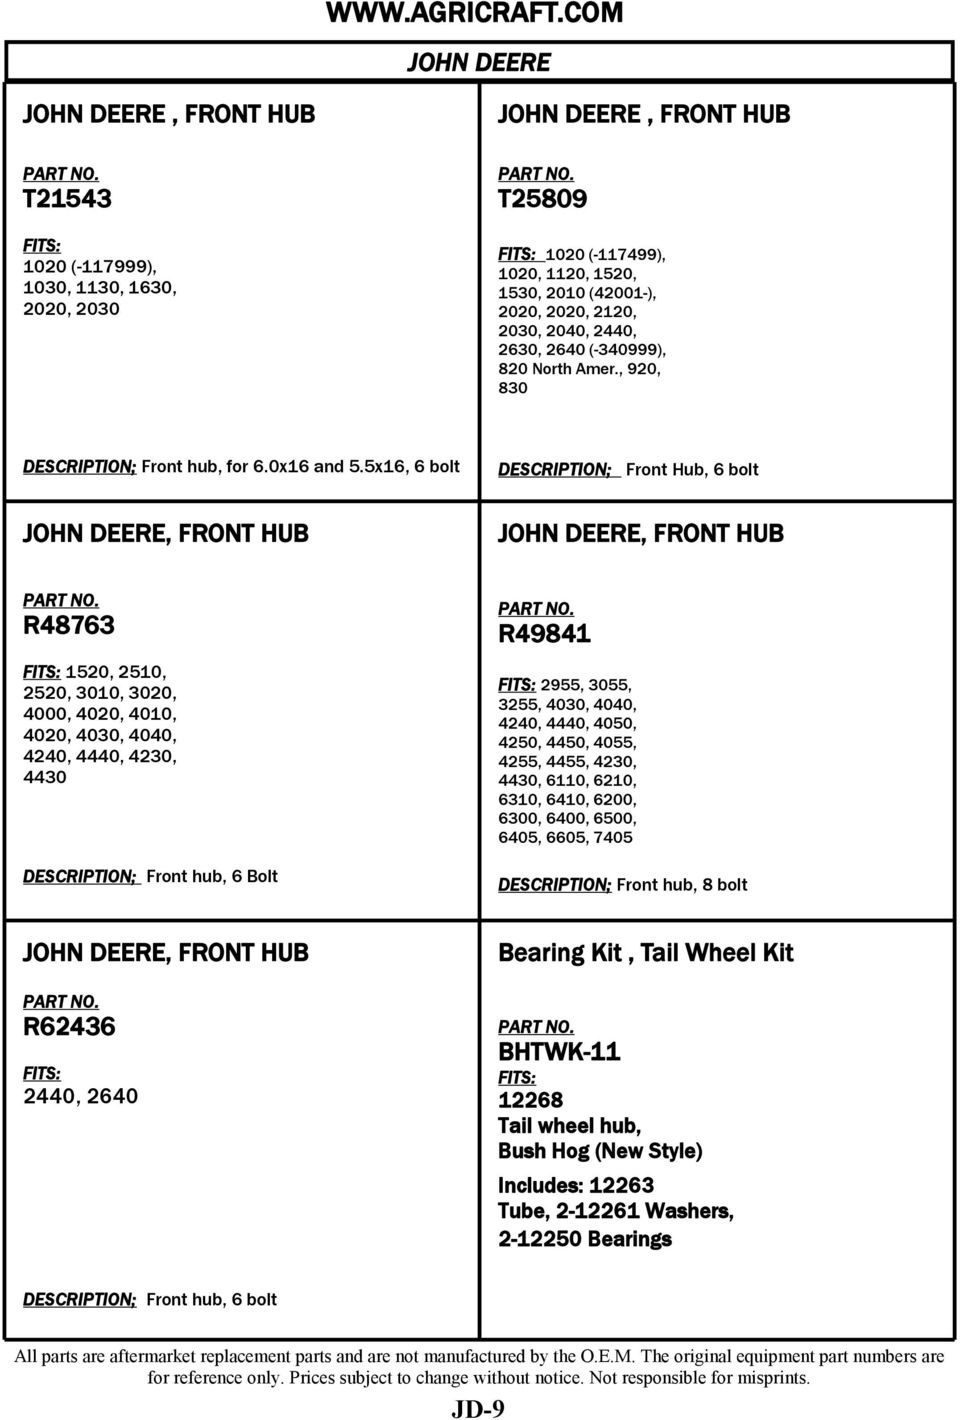 Replacement Parts John Deere Pdf 4250 Wiring Diagram 5x16 6 Bolt Front Hub R48763